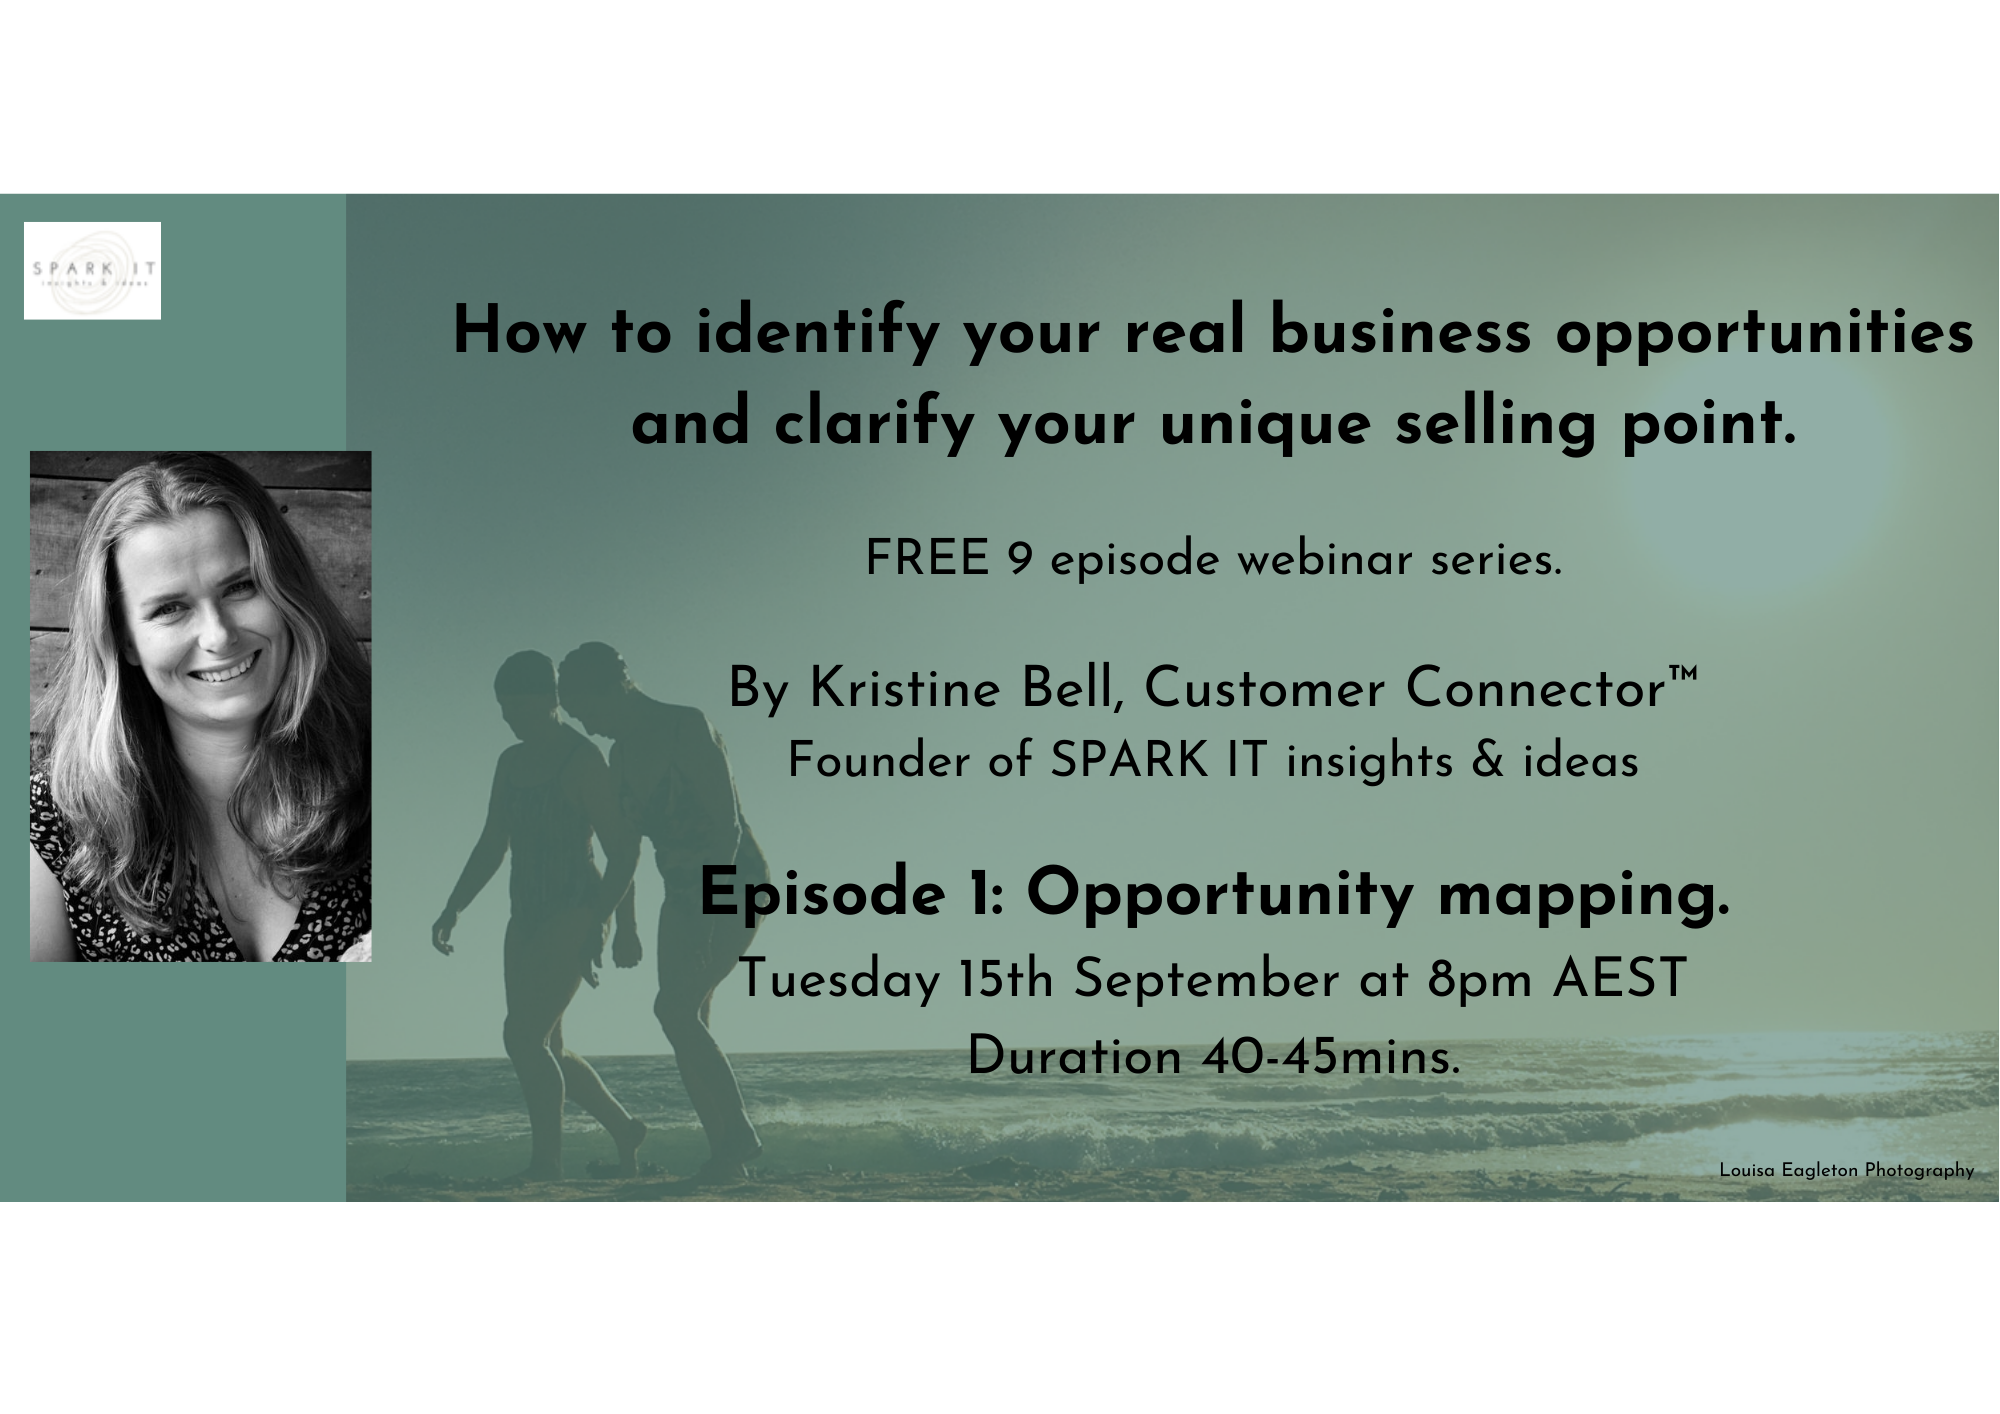 How to identify your real business opportunities and clarify your USP